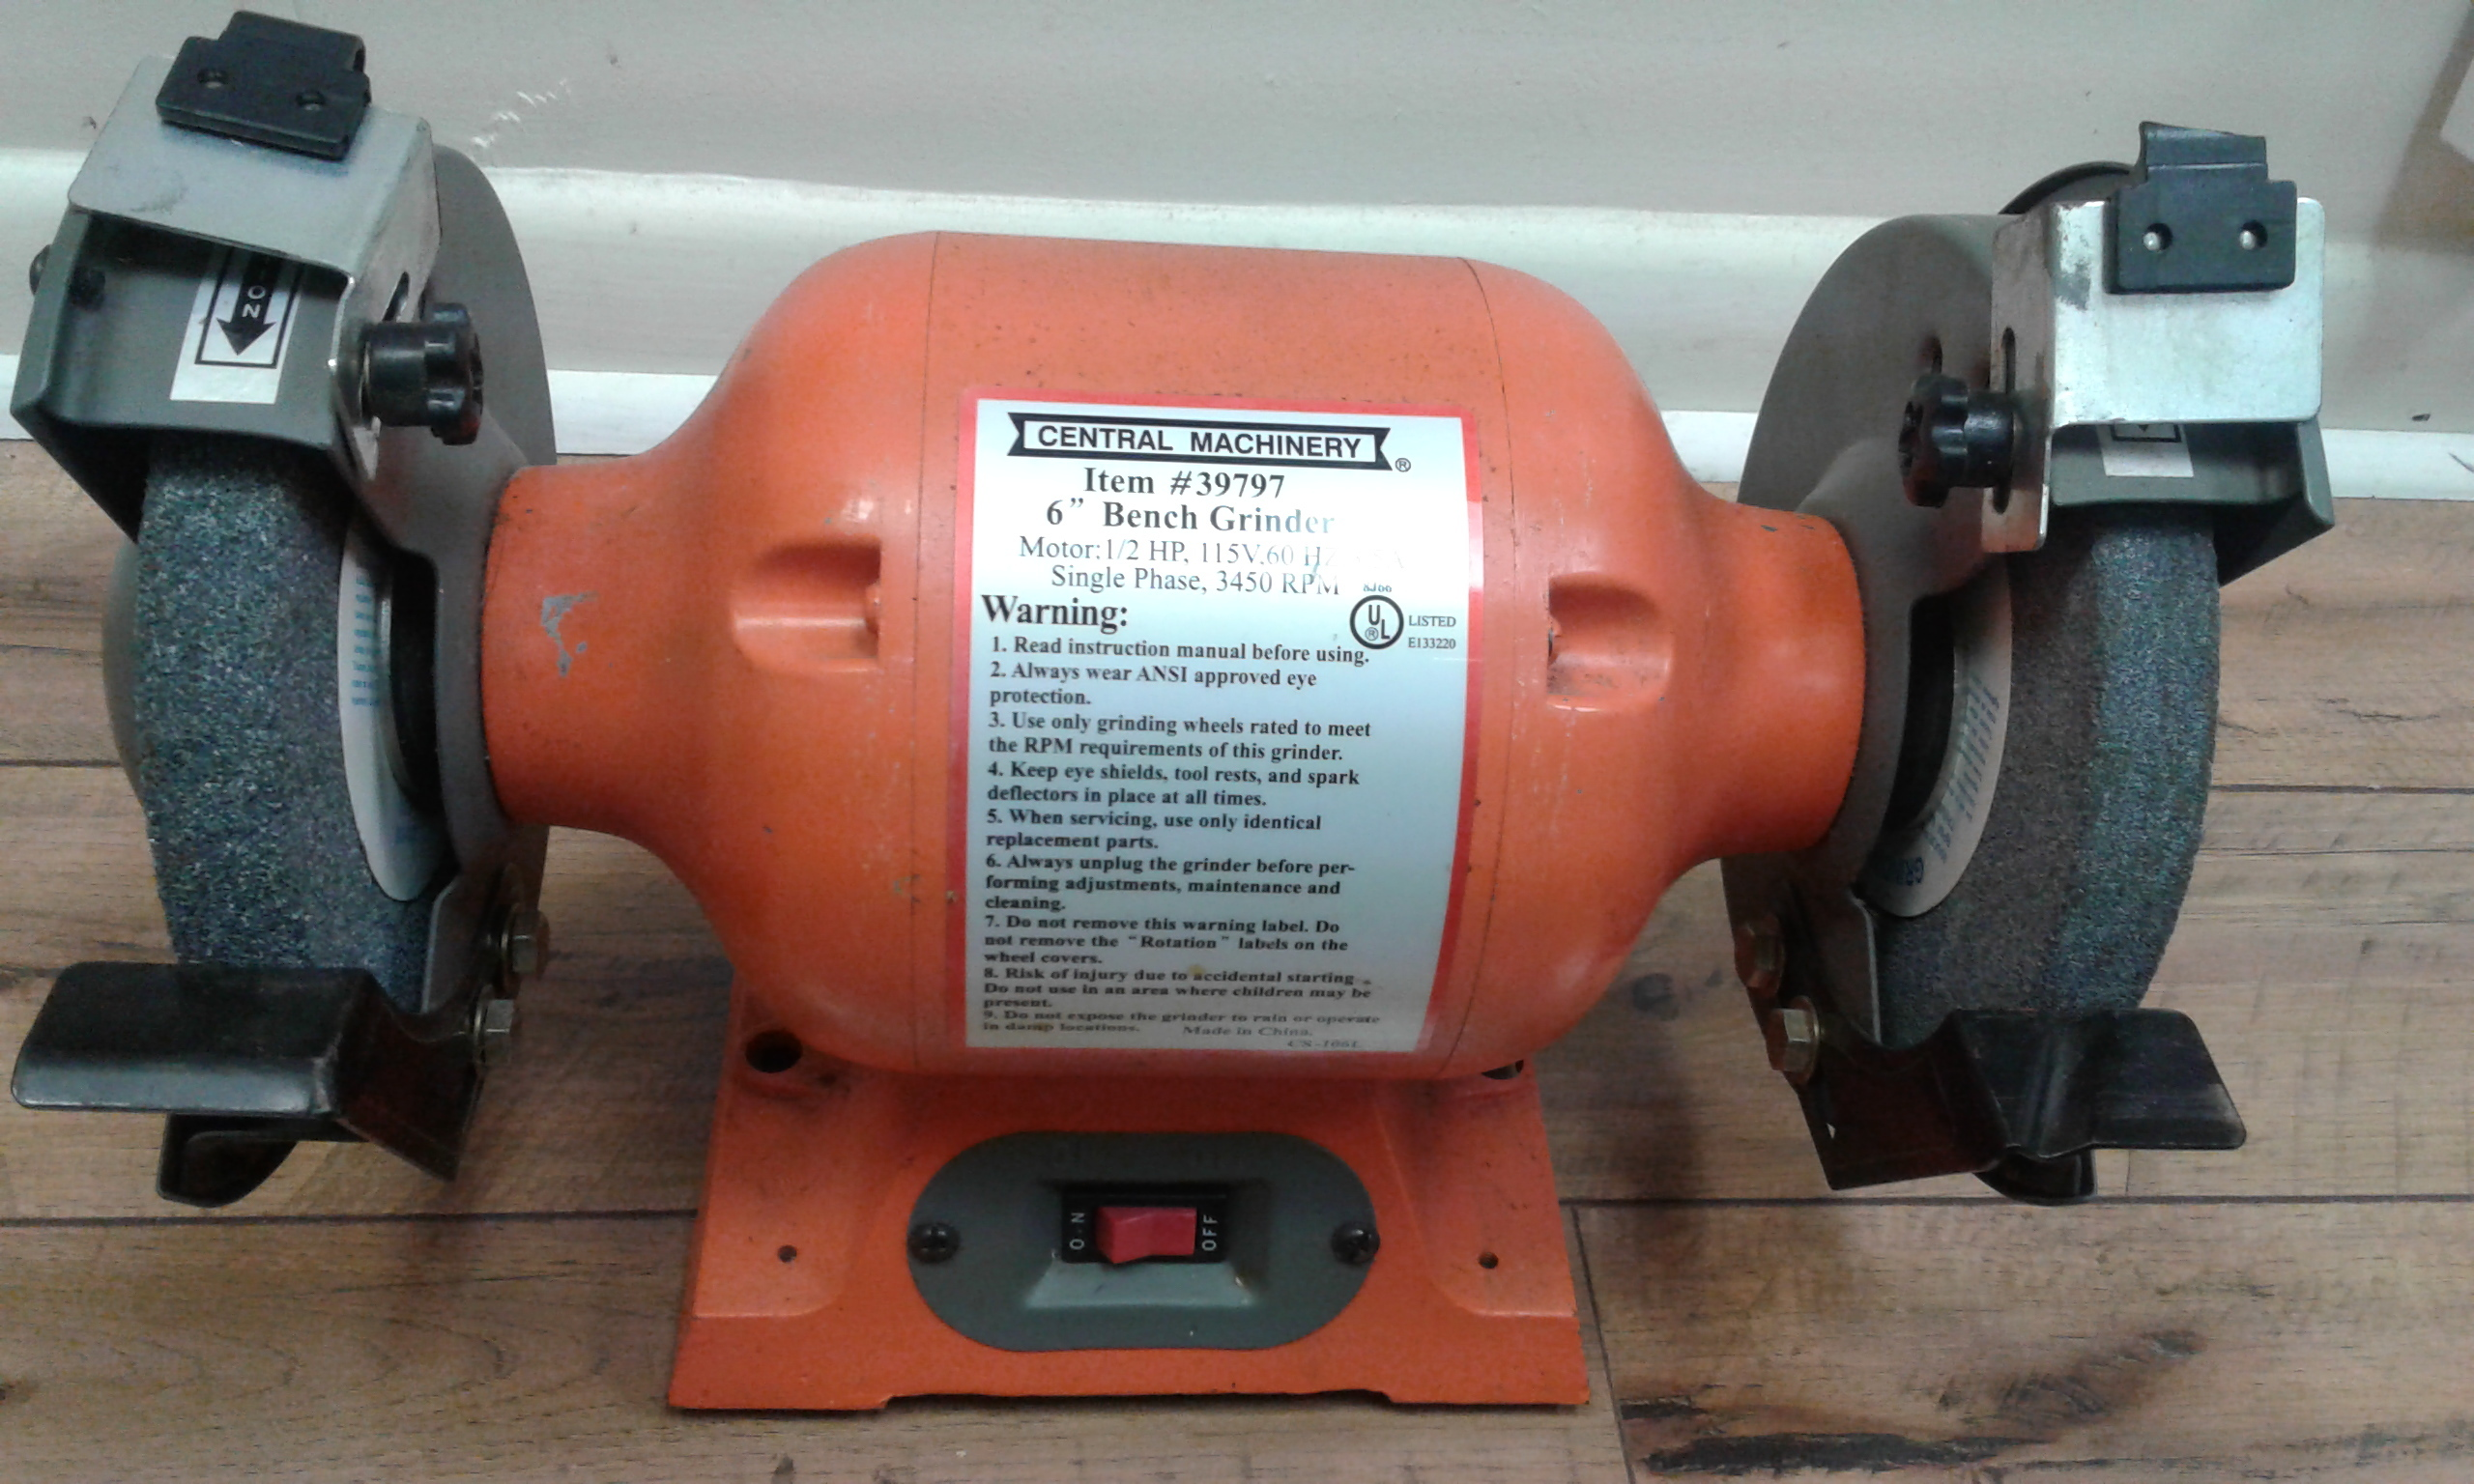 CENTRAL MACHINERY - BENCH GRINDER TOOLS